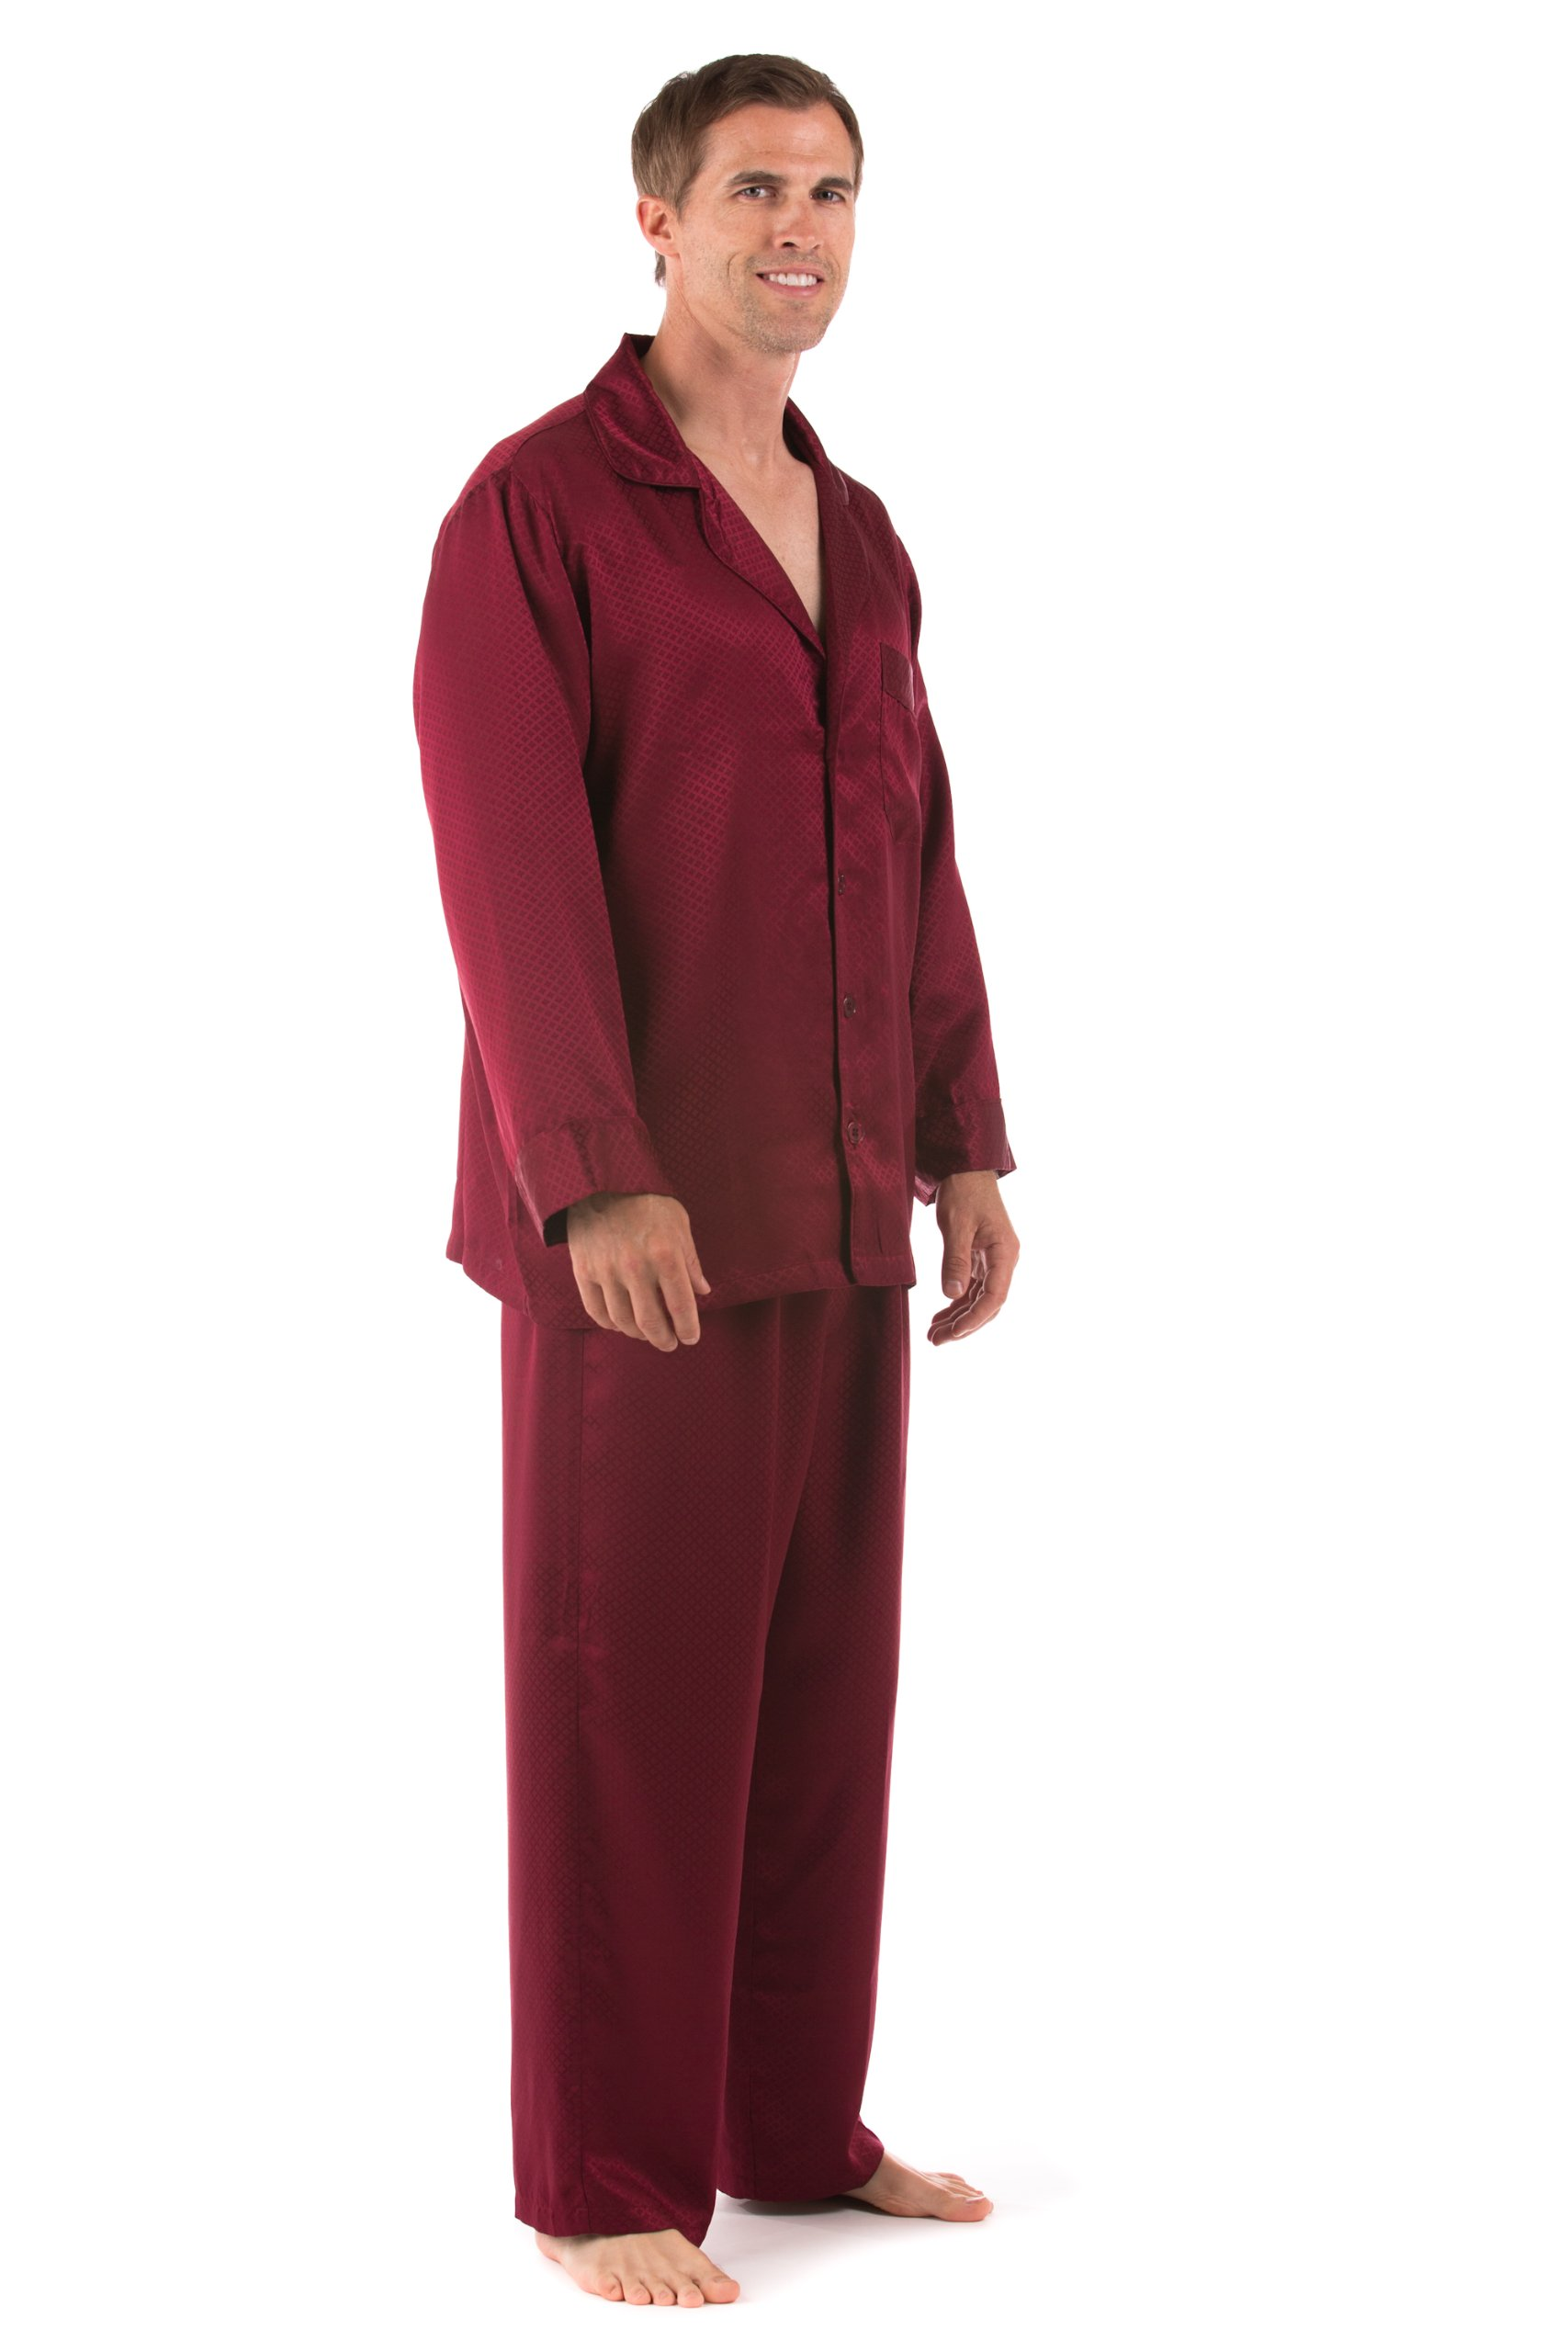 TexereSilk Men's Luxury Silk Sleepwear Set (Burgundy, Large) Father's Day Presents MS0003-BRG-L